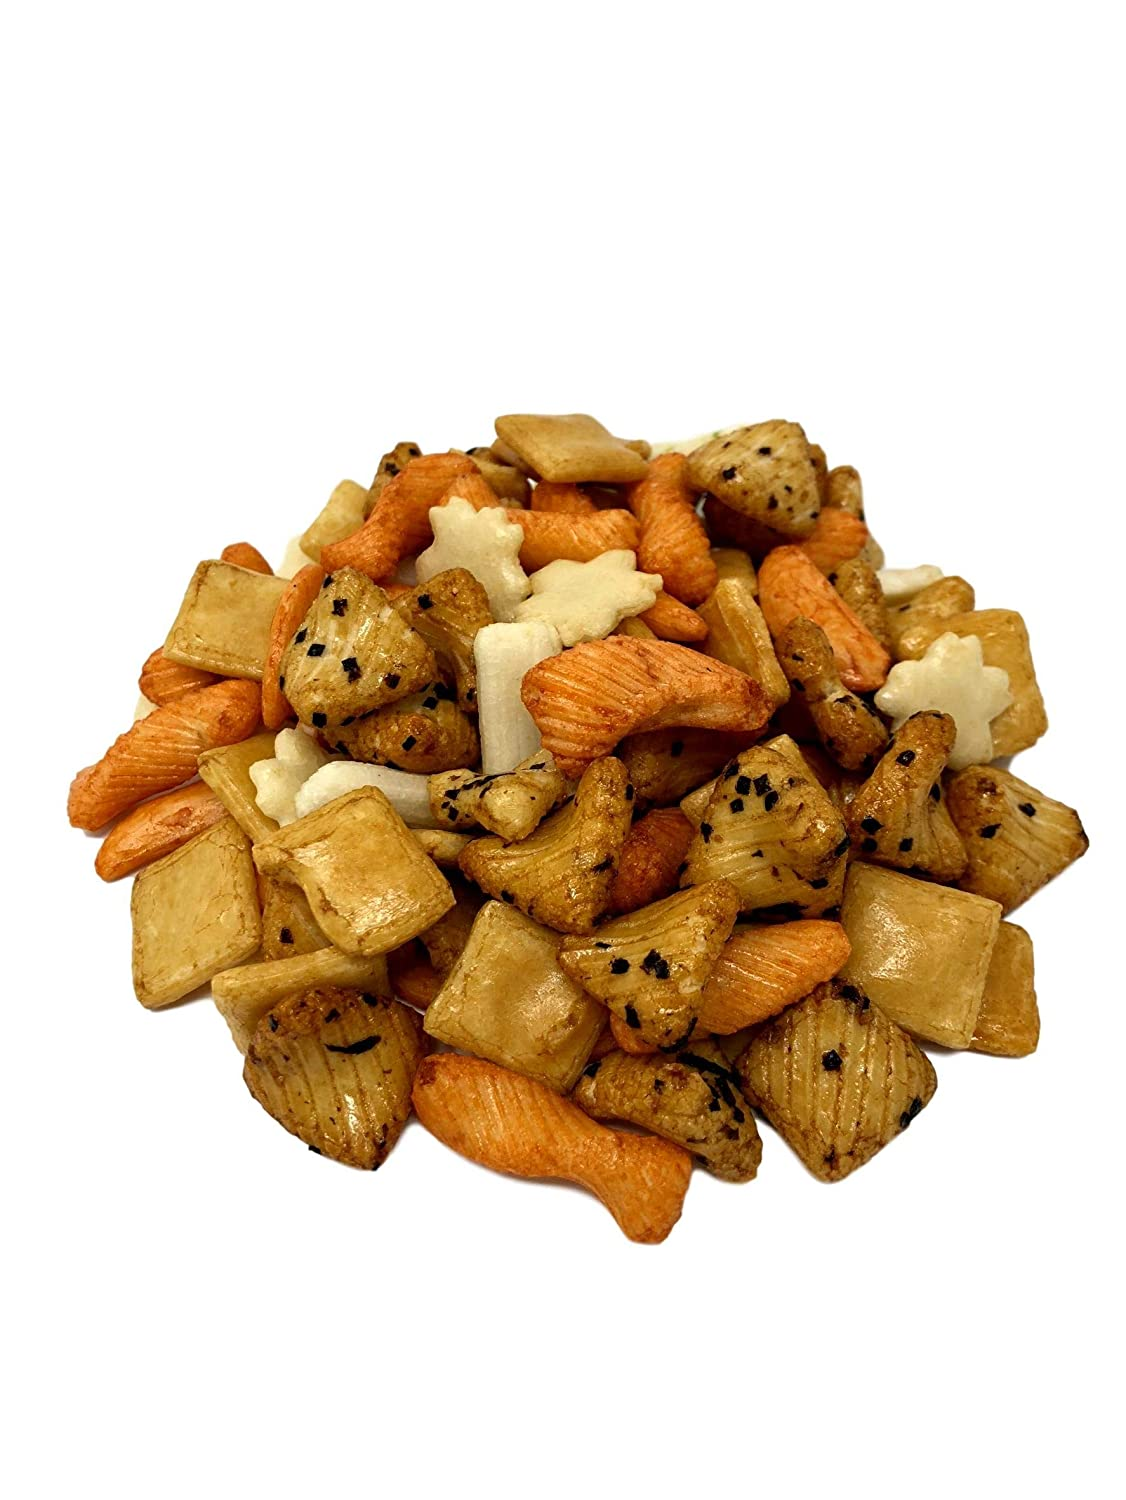 Oriental Rice Crackers Popular No Artificial Crunchy Spicy Colors N Seattle Mall